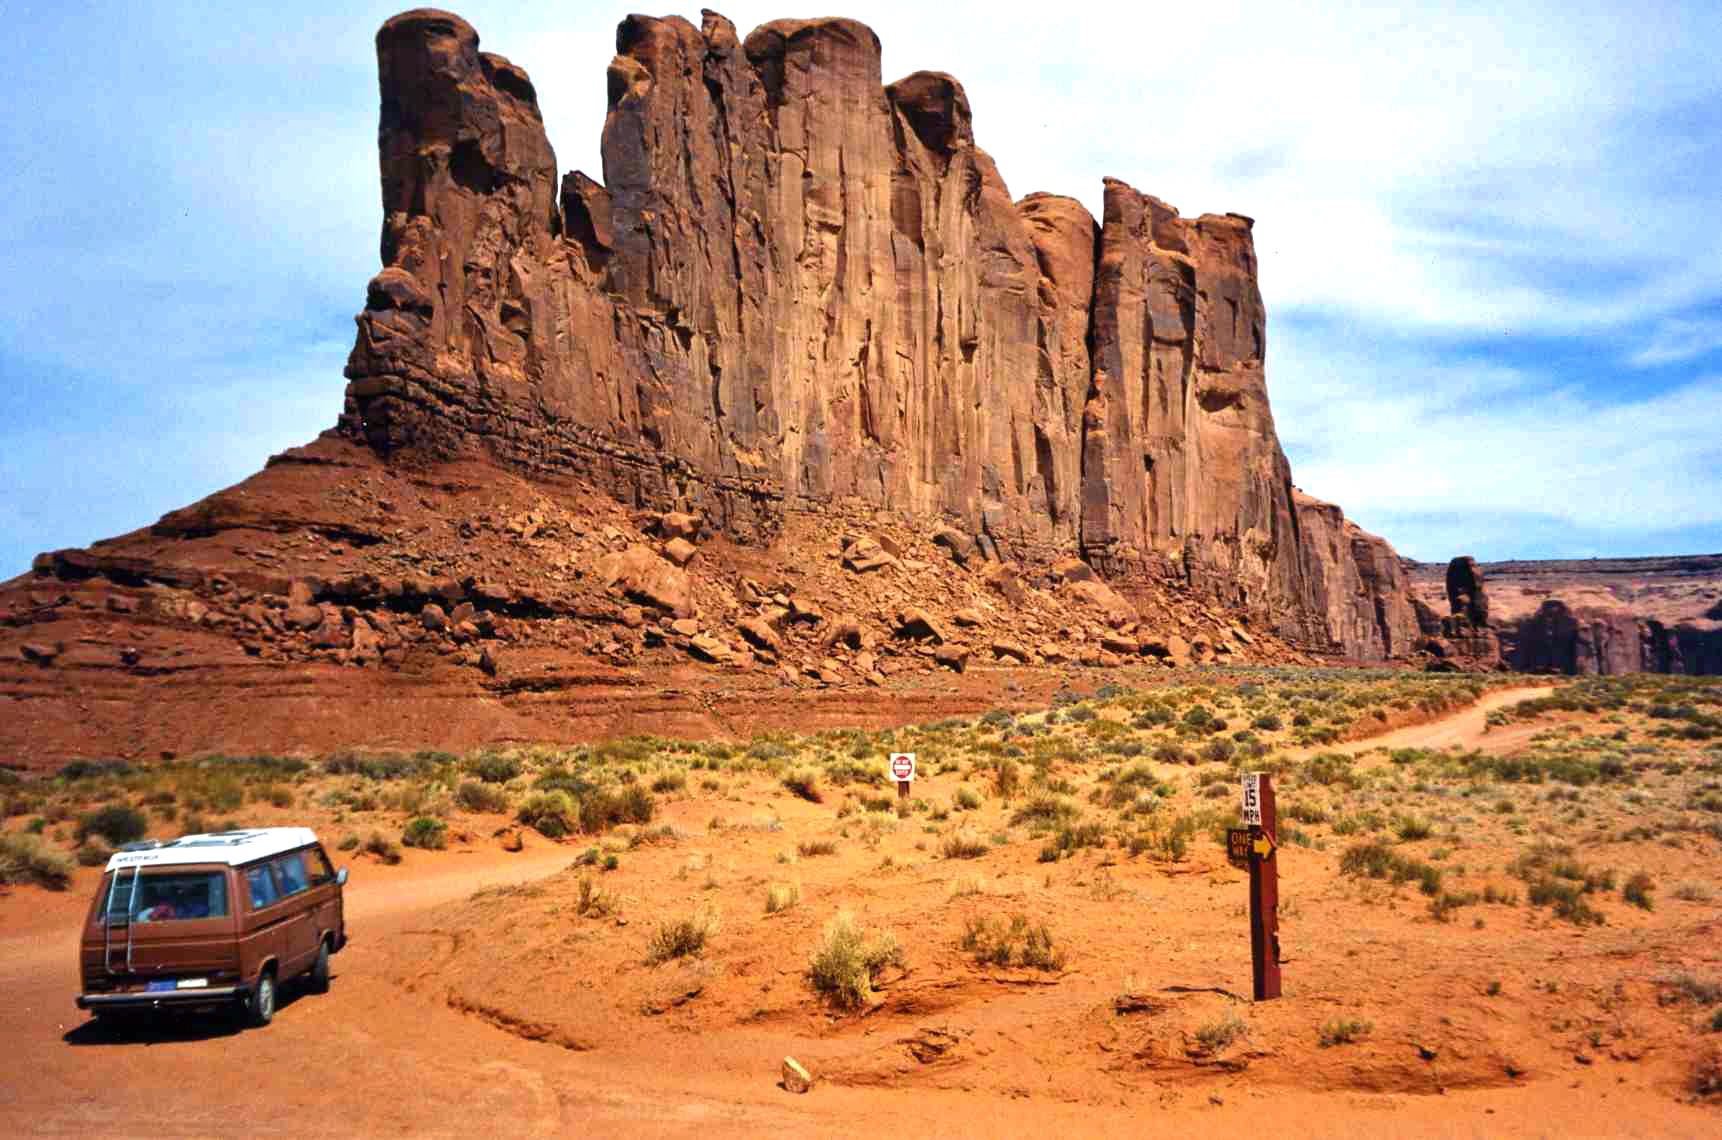 He also really loved roaming around Monument Valley